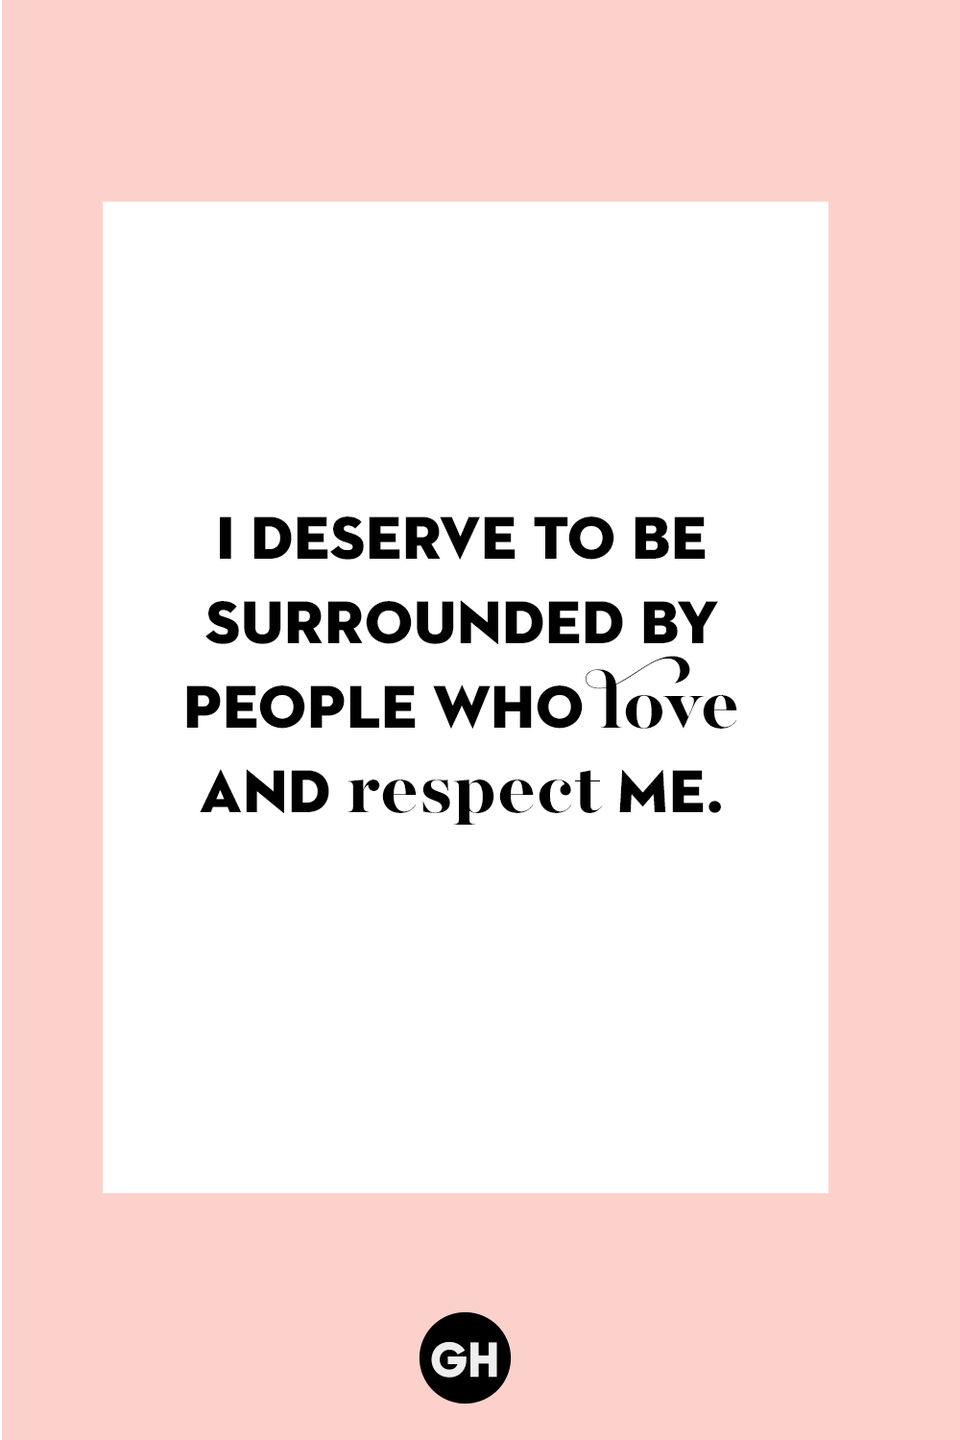 <p>I deserve to be surrounded by people who love and respect me.</p>